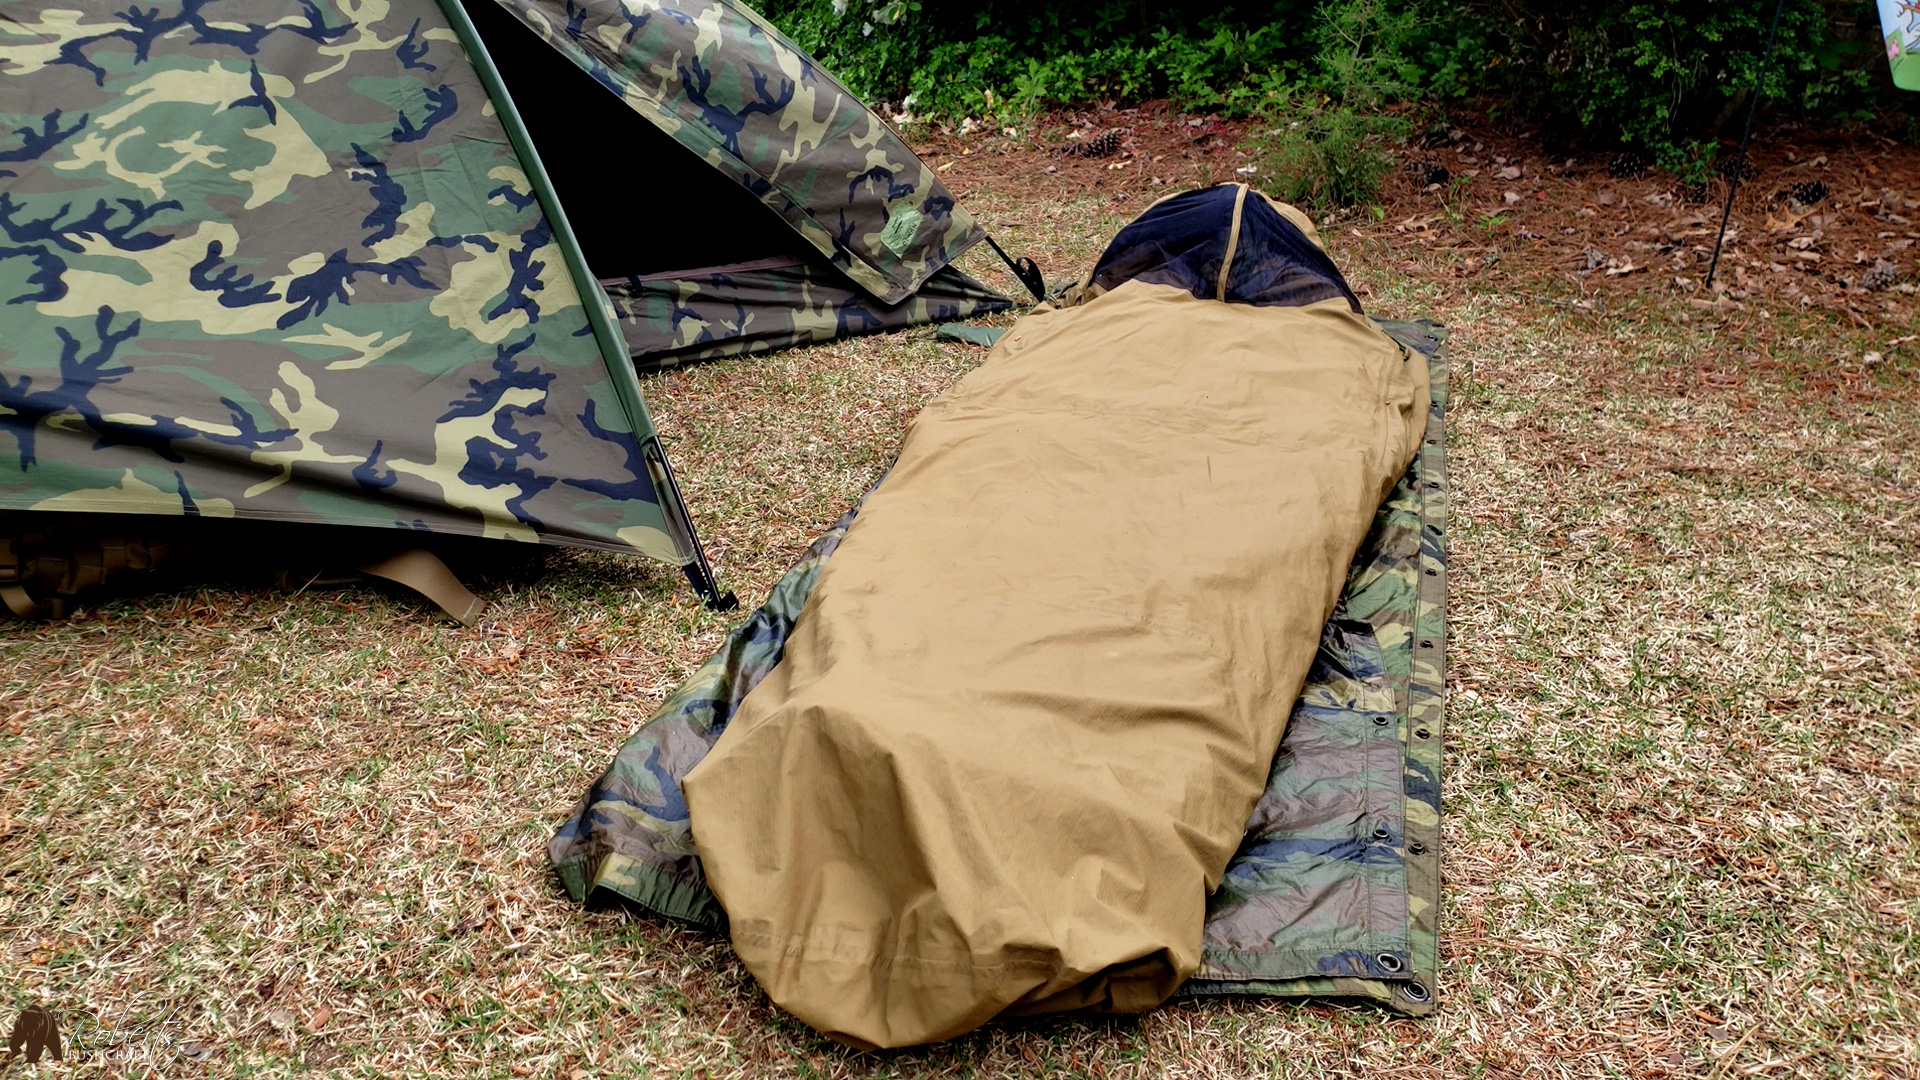 USMC Improved Bivy Cover and TCOP tent